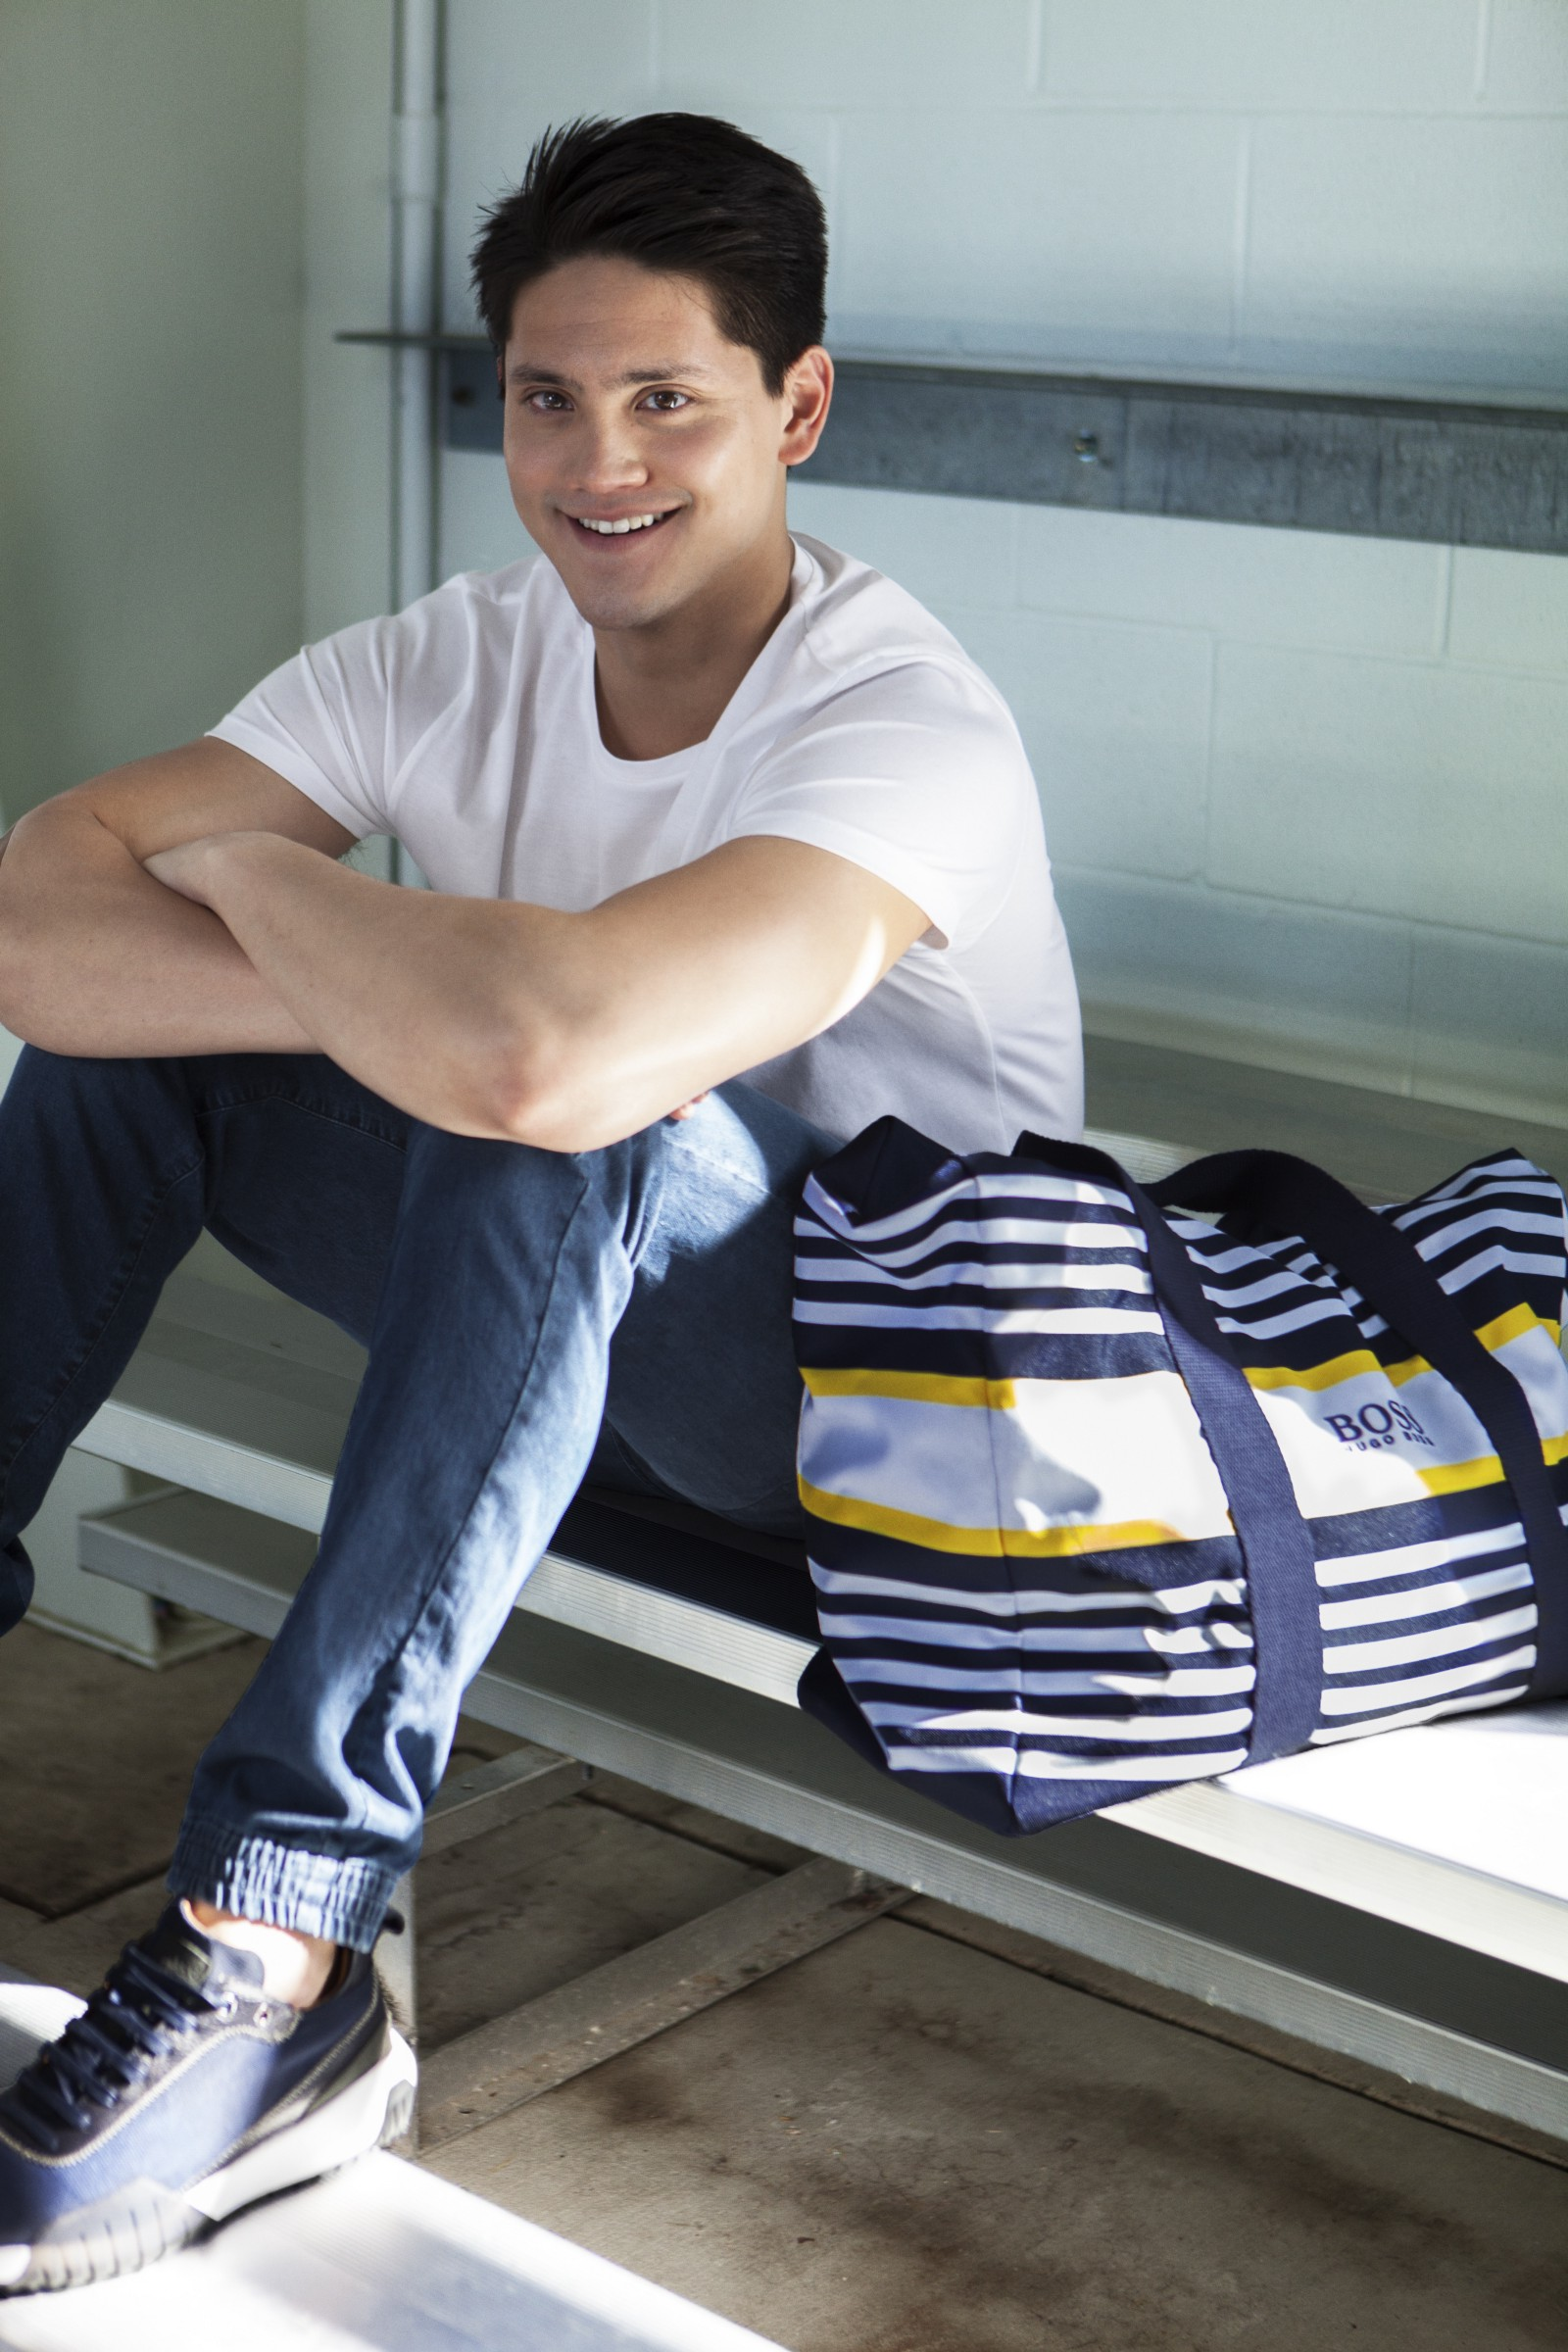 969898f784d HUGO BOSS Launches Limited Edition Capsule Collection with Joseph Schooling